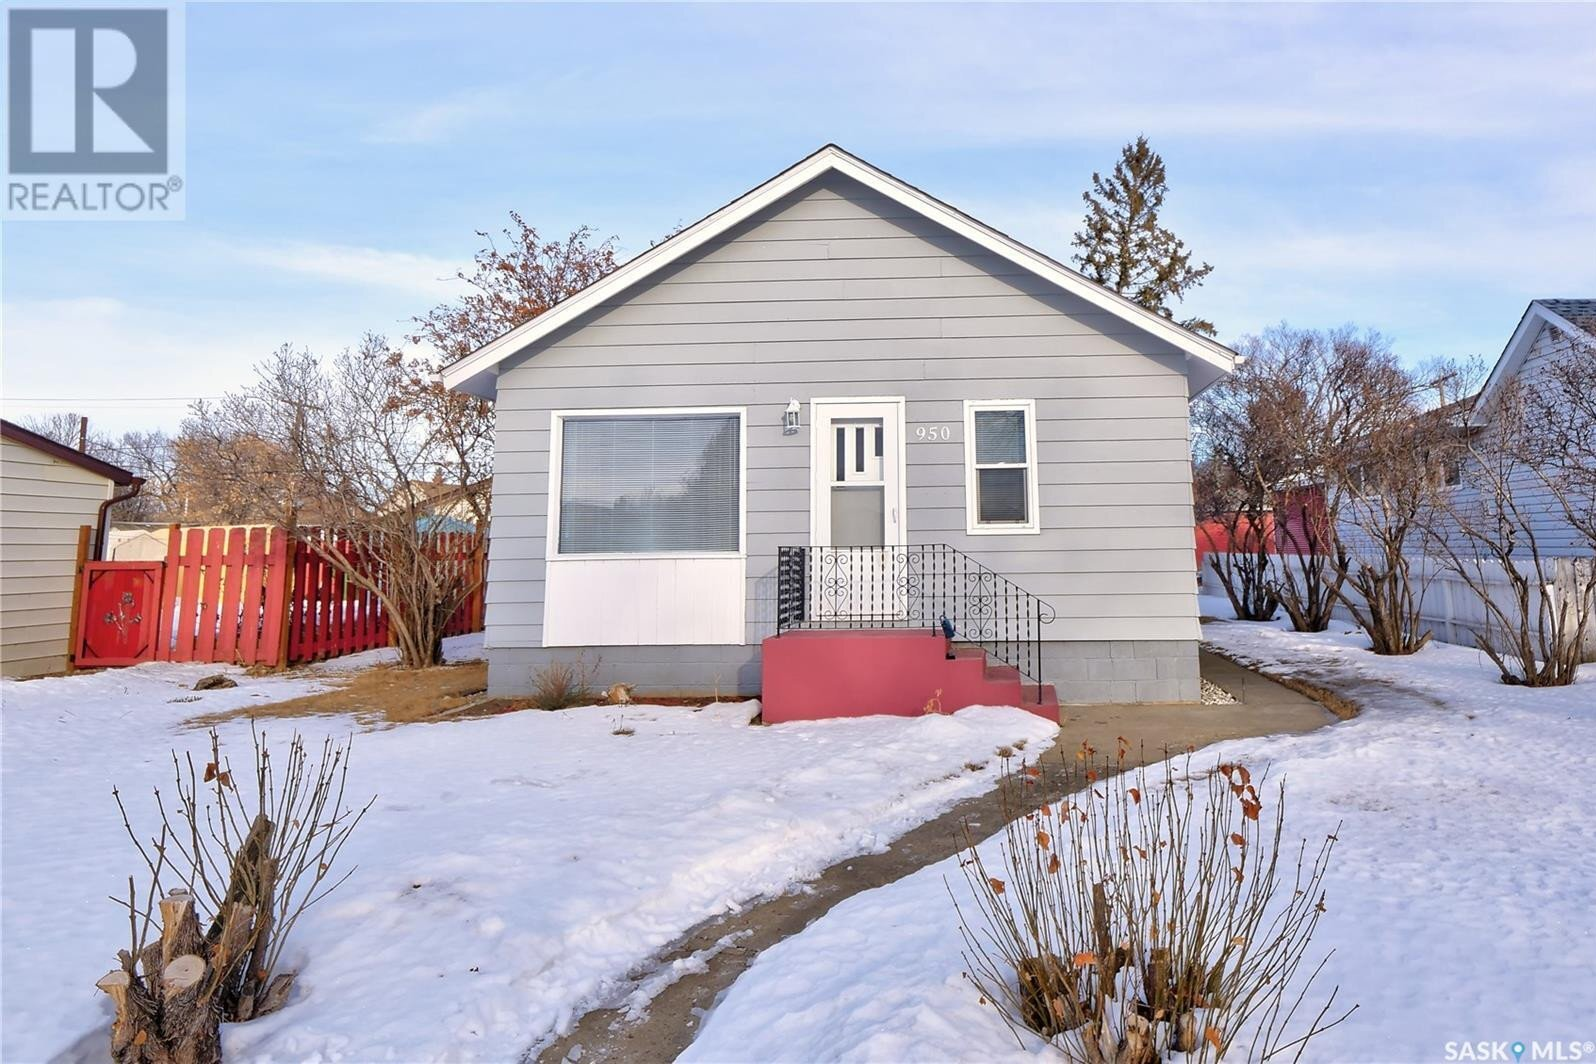 House for sale at 950 Stadacona St E Moose Jaw Saskatchewan - MLS: SK838791